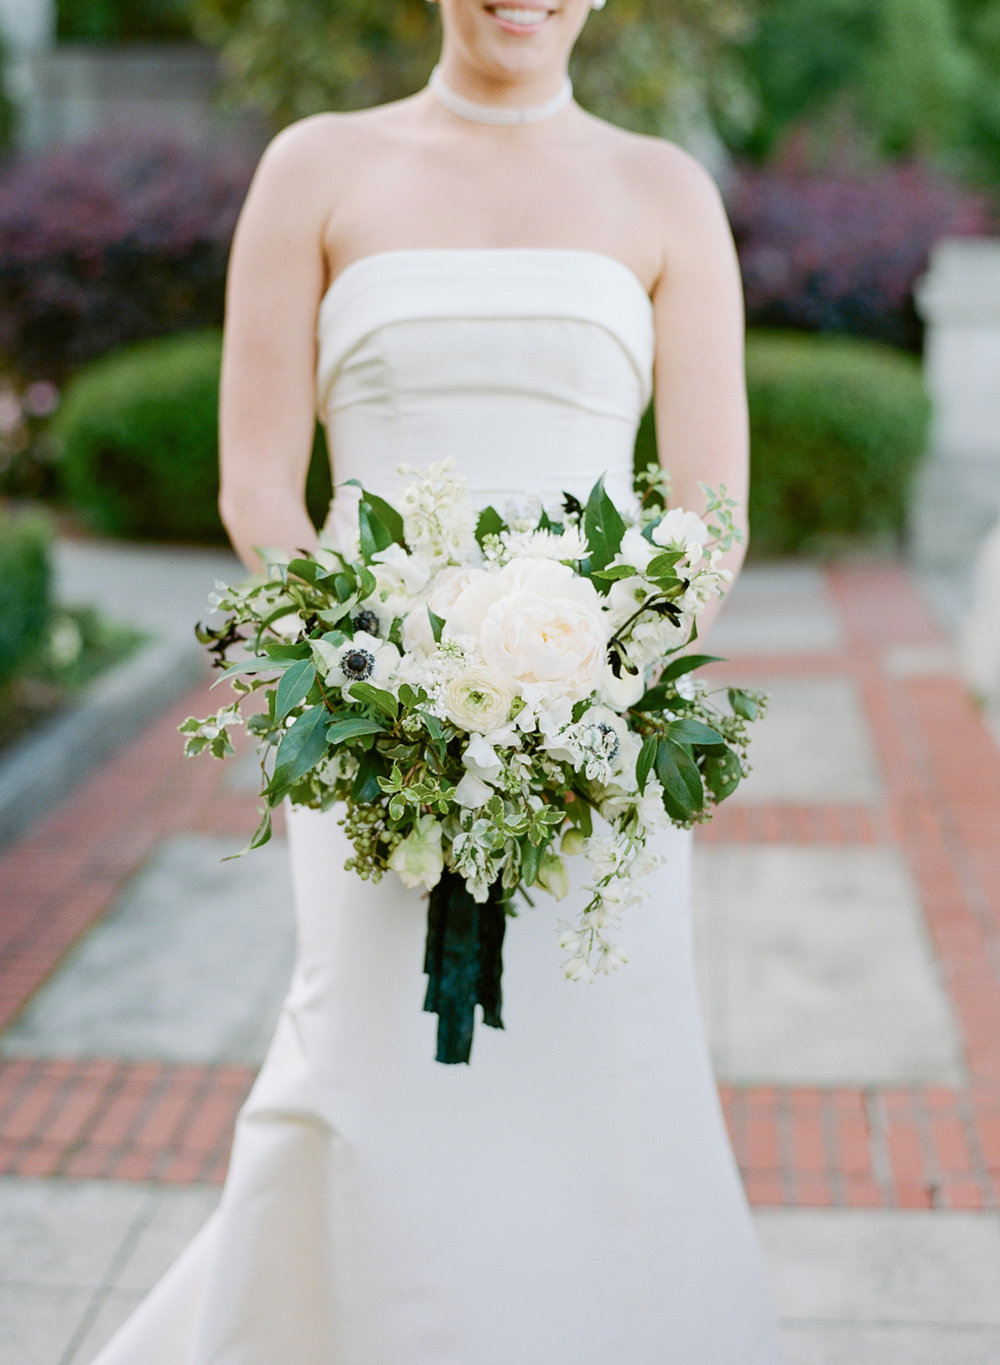 A portrait of the bride's bouquet before the wedding ceremony; Sylvie Gil Photography